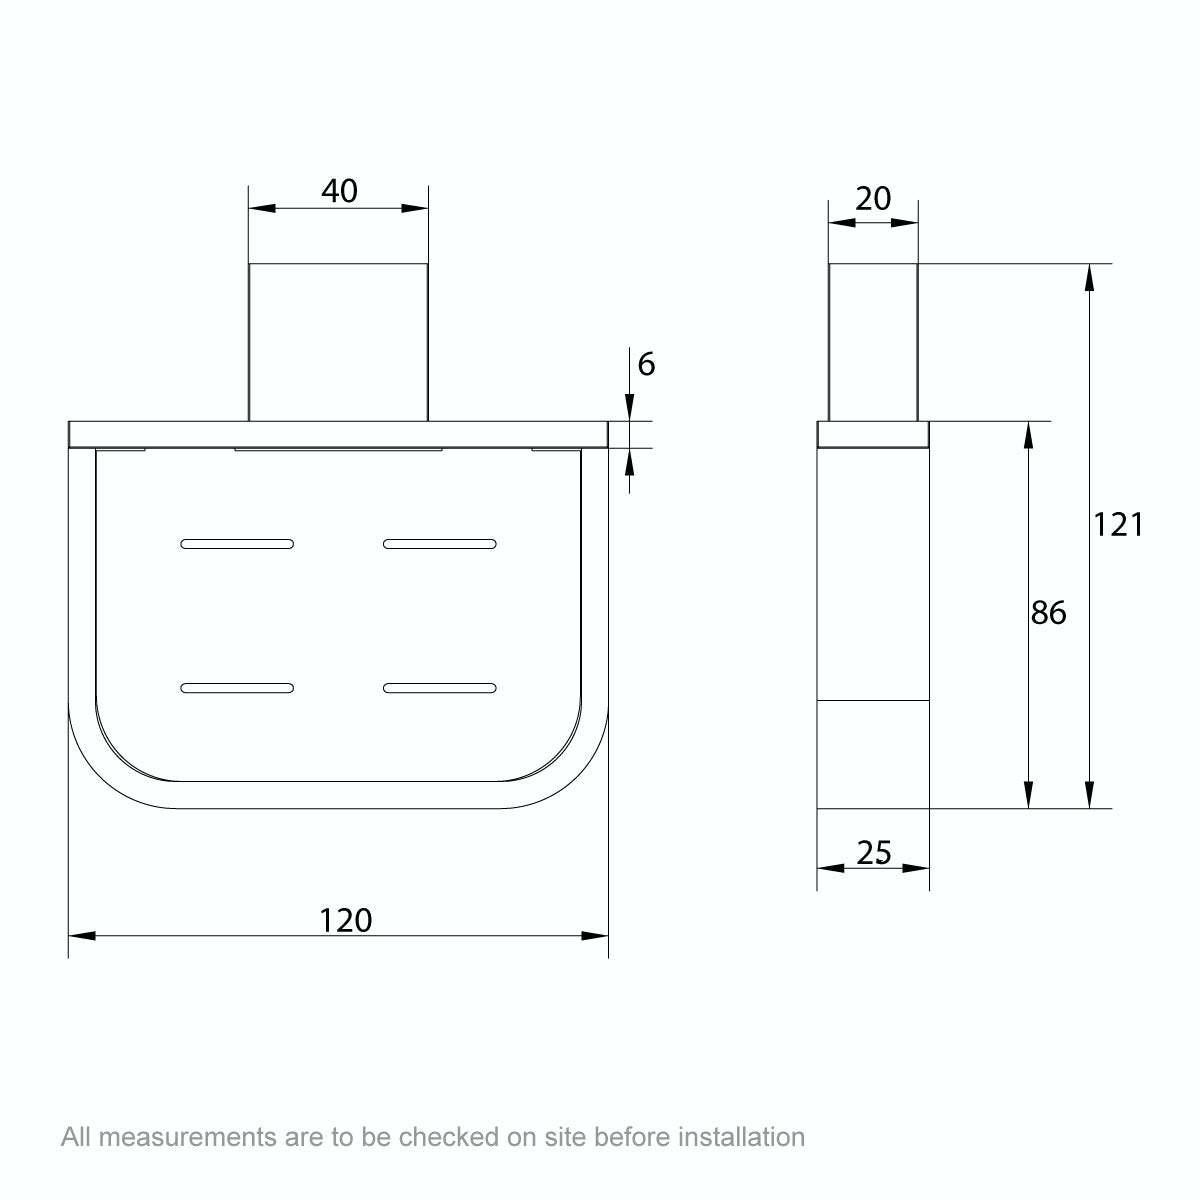 Dimensions for Mode Spencer soap dish